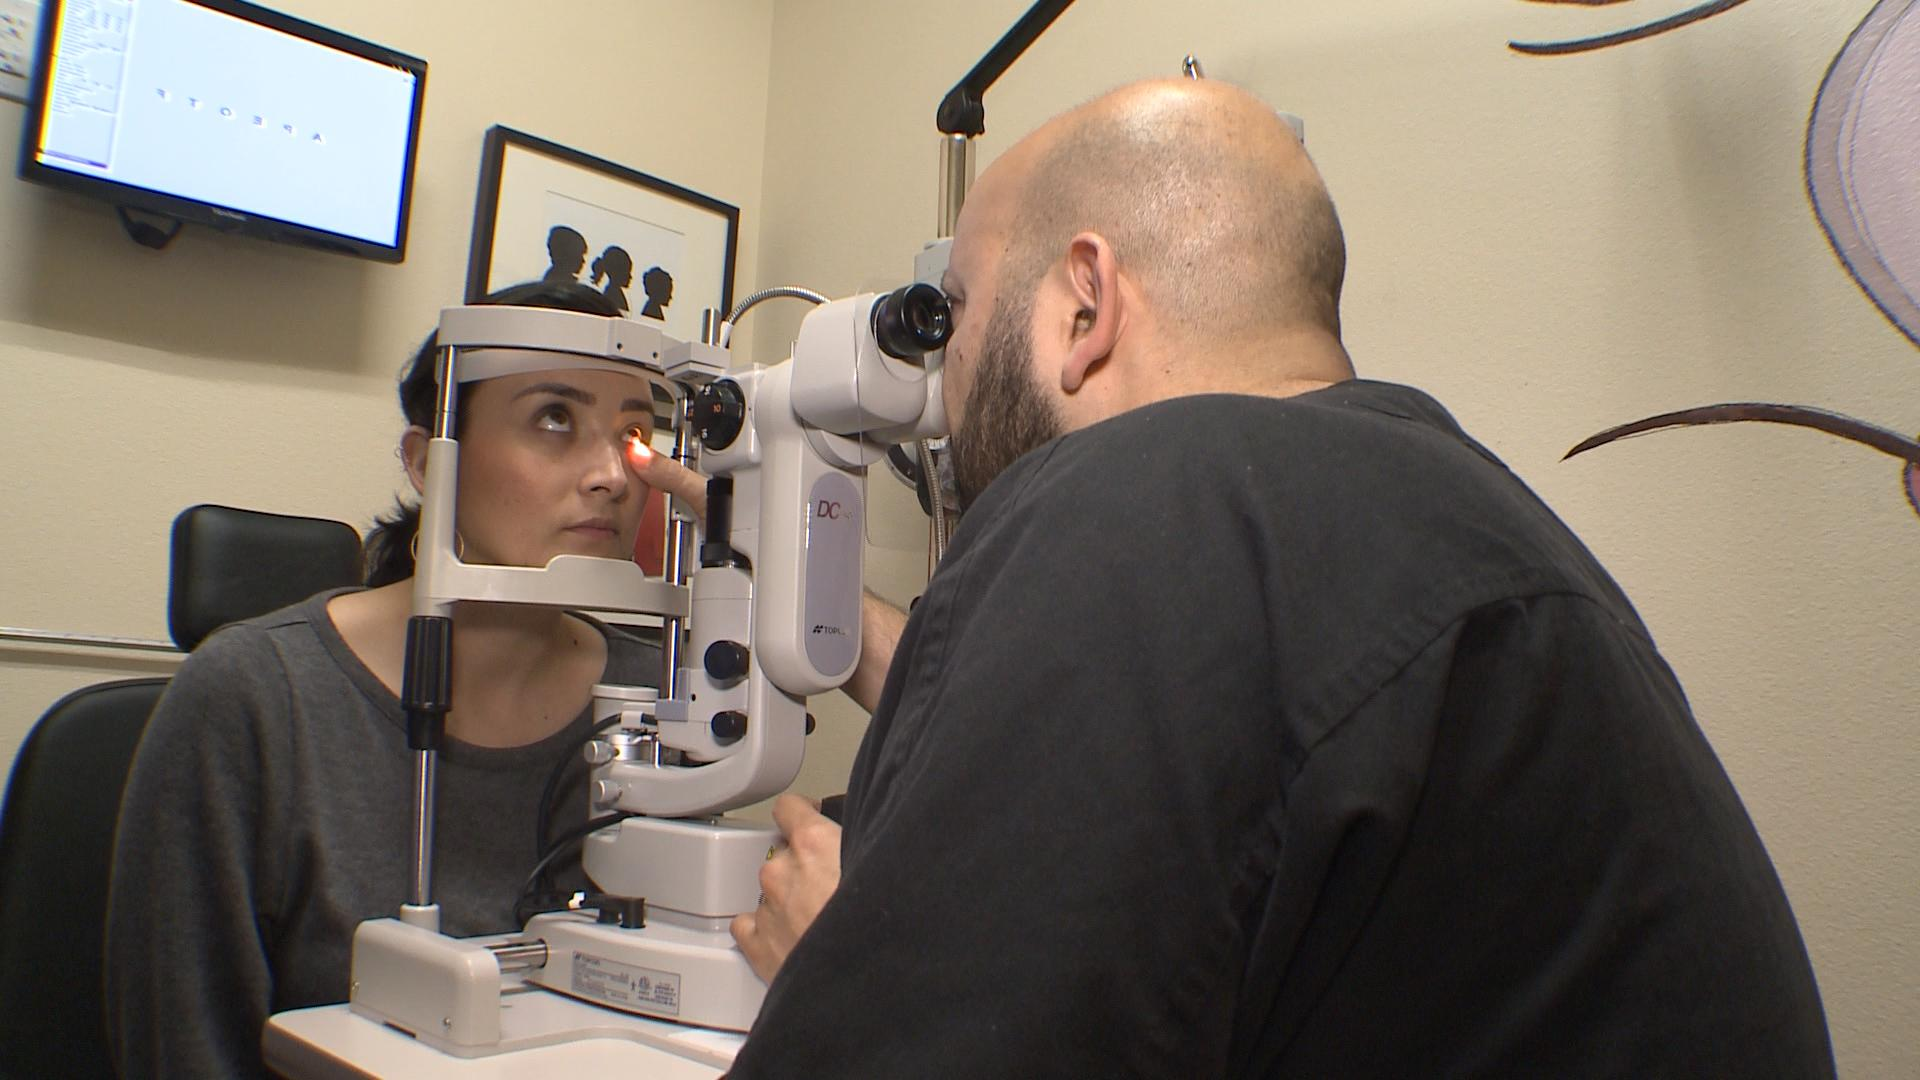 Doctor exams patient with Meibomian gland dysfunction